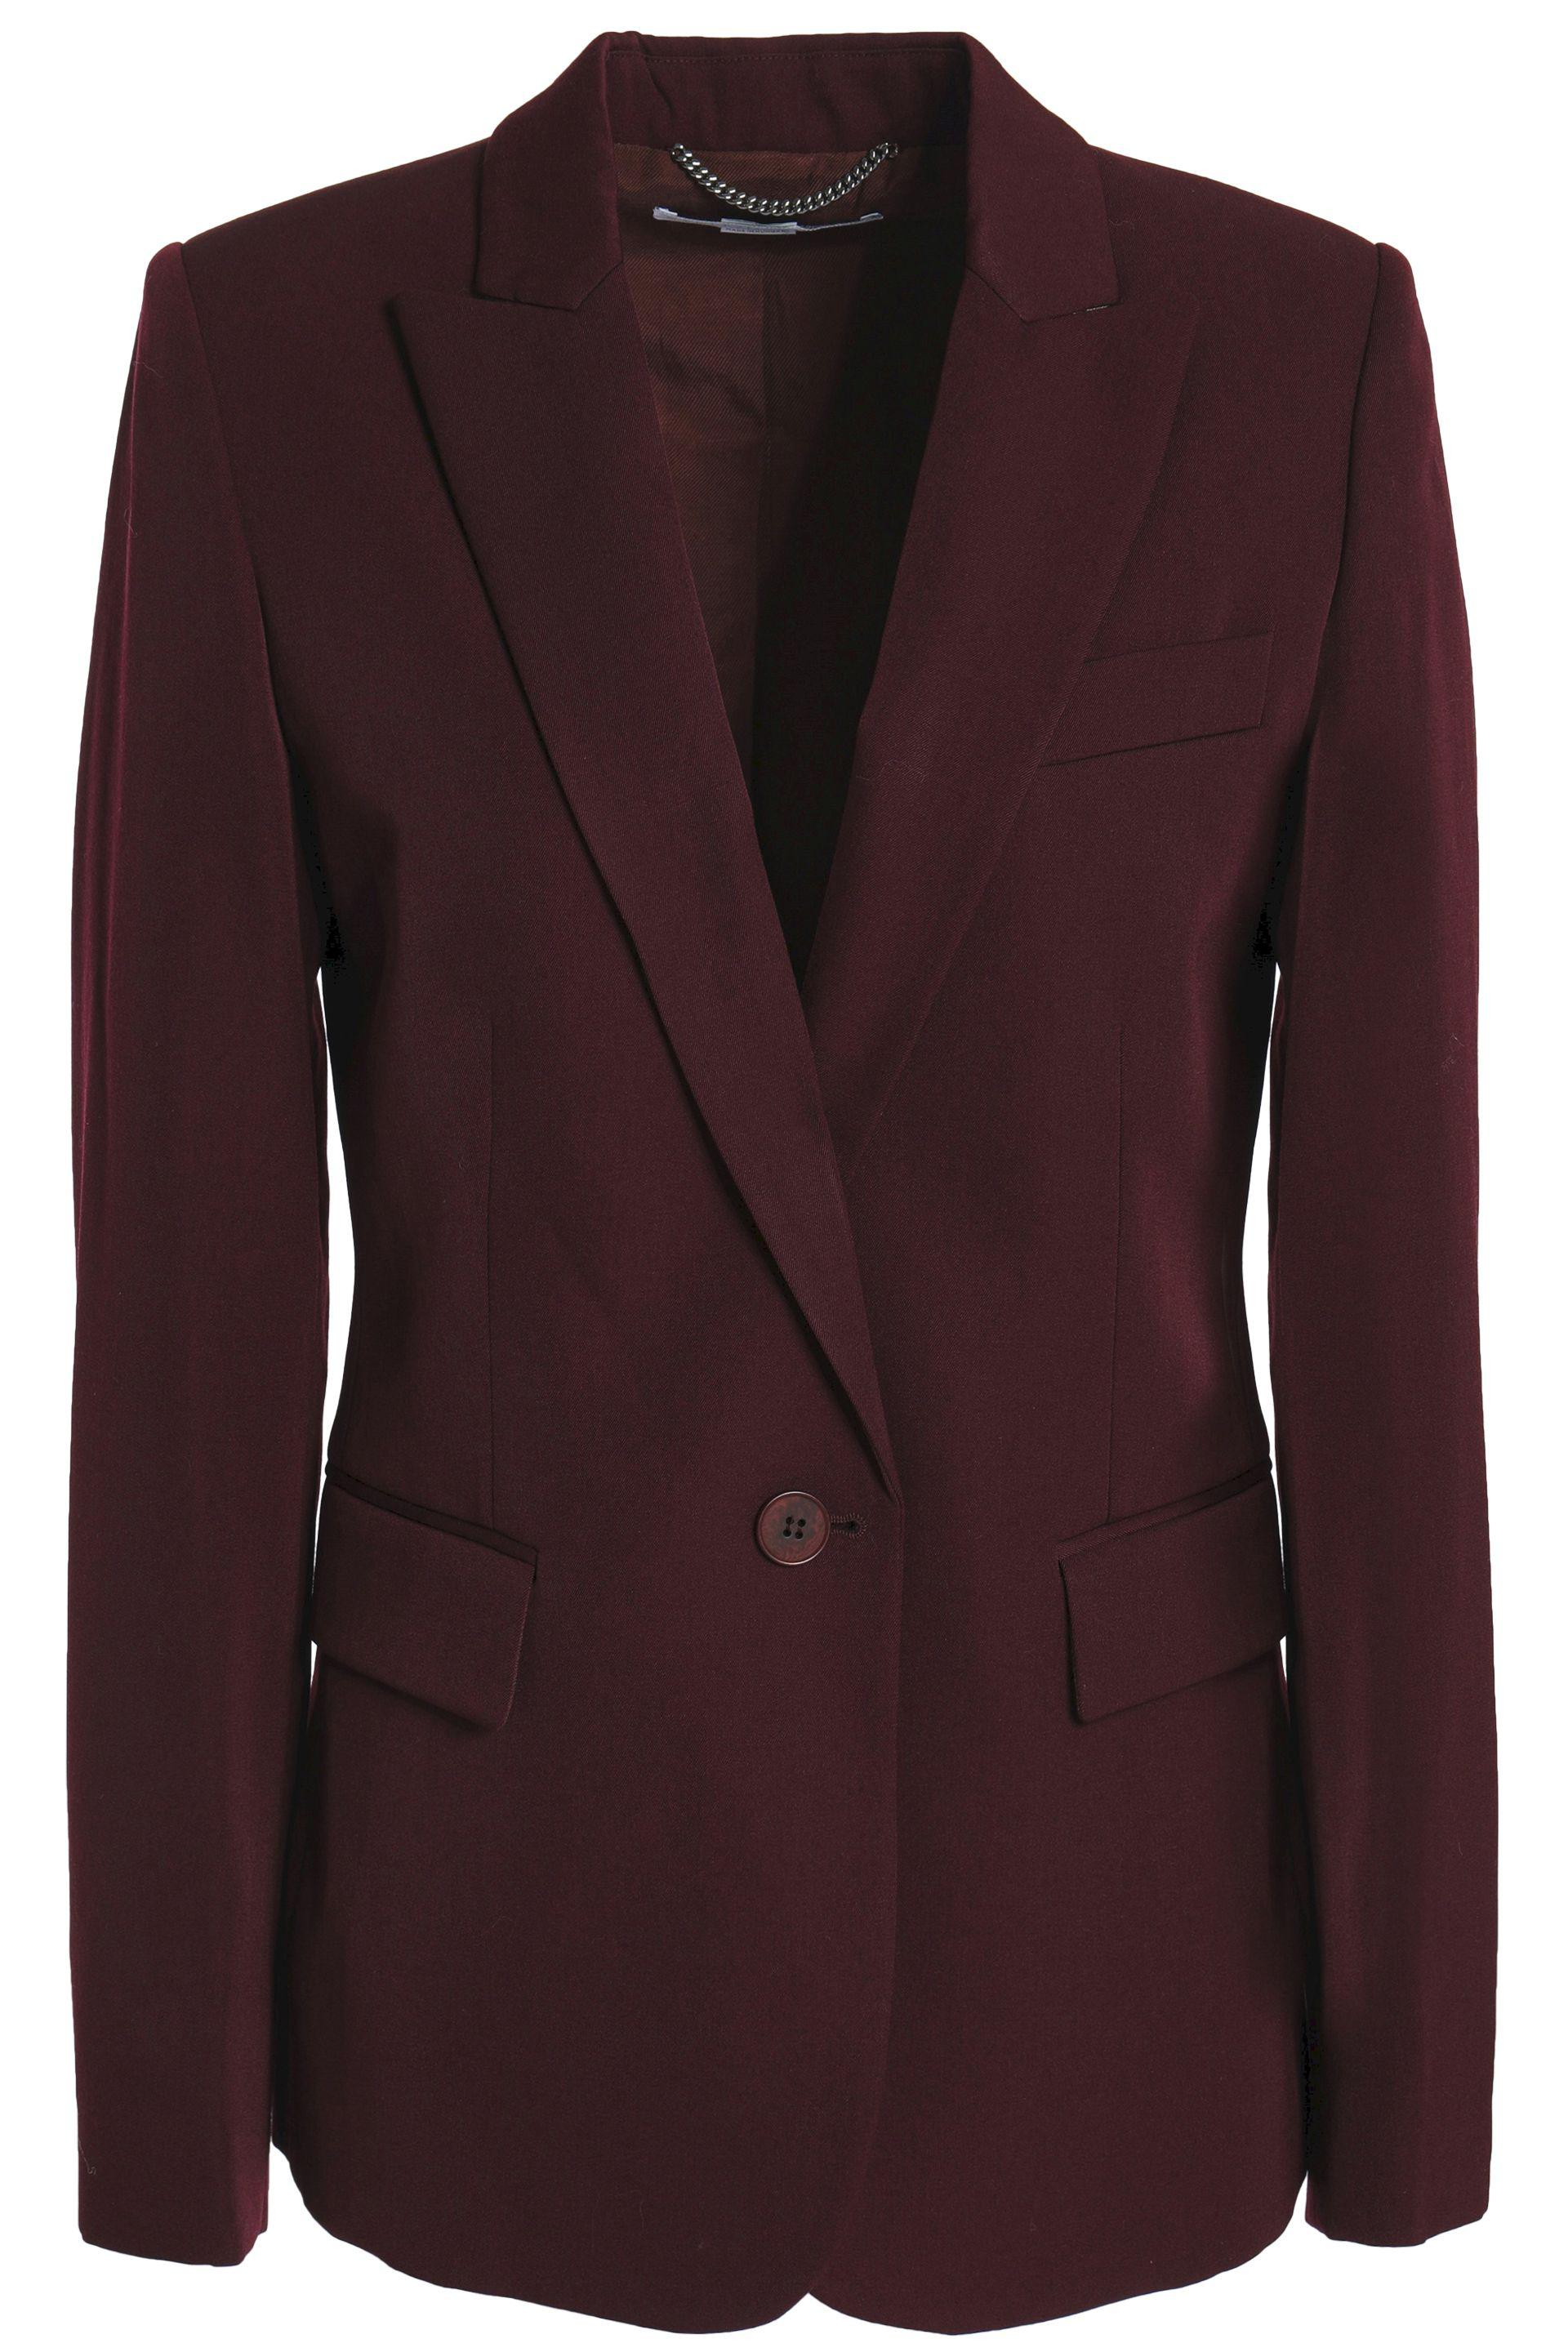 7896b0d48a6 Stella Mccartney Wool-twill Blazer in Purple - Lyst